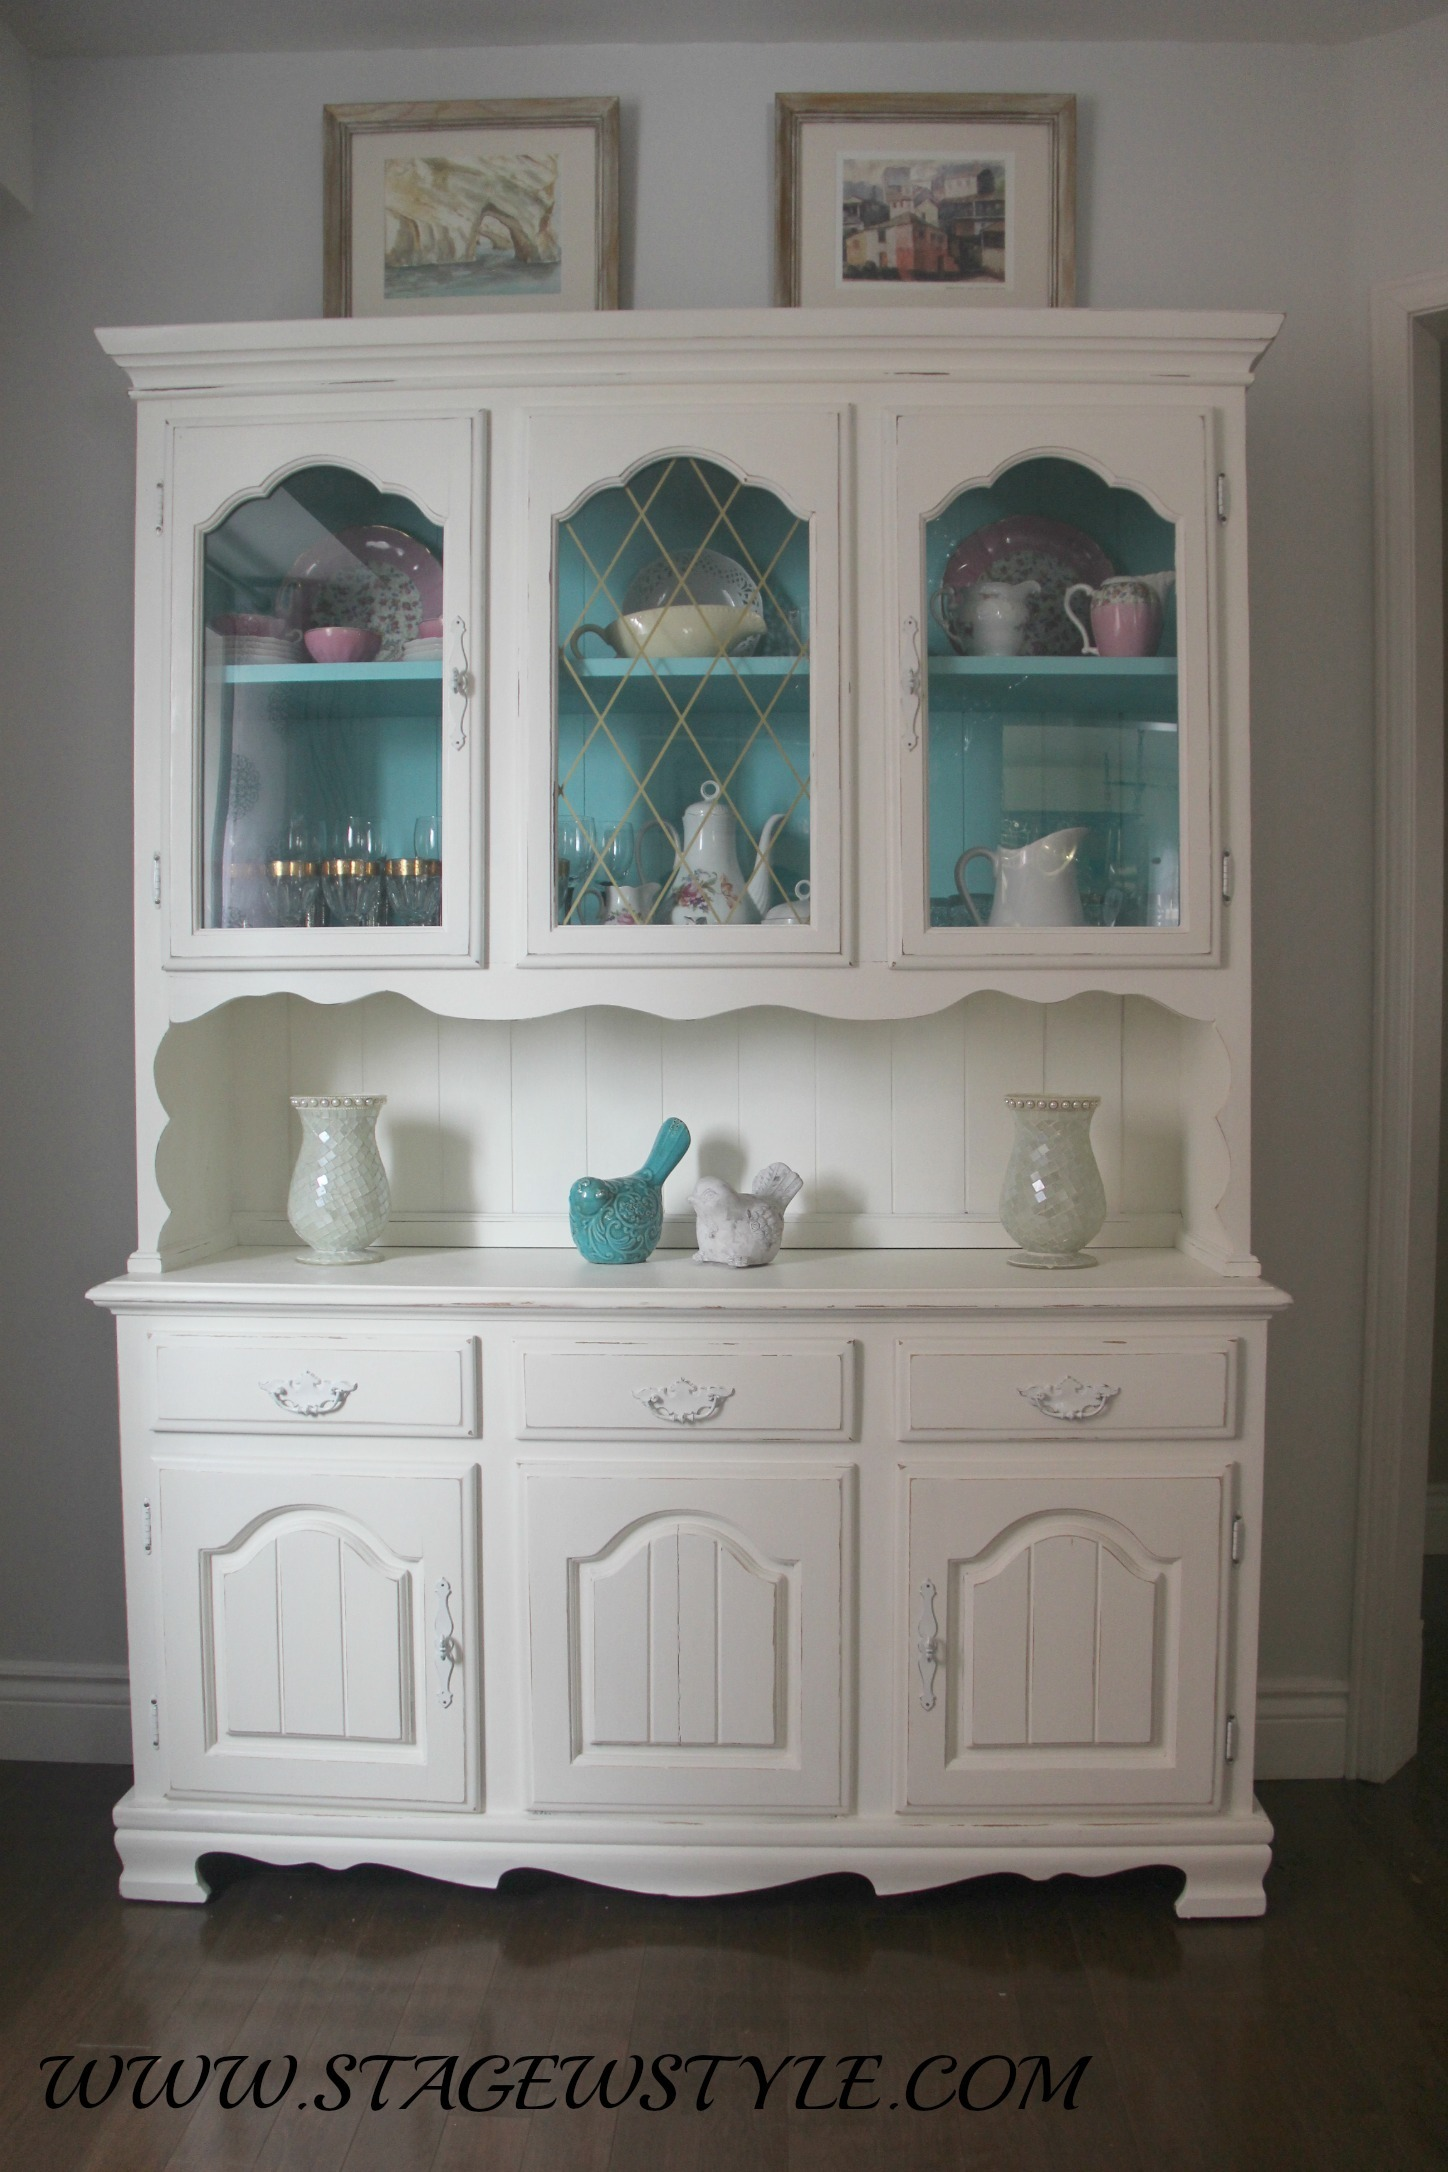 China cabinet makeover stage with style diy - Affordable diy home makeovers that you should consider ...